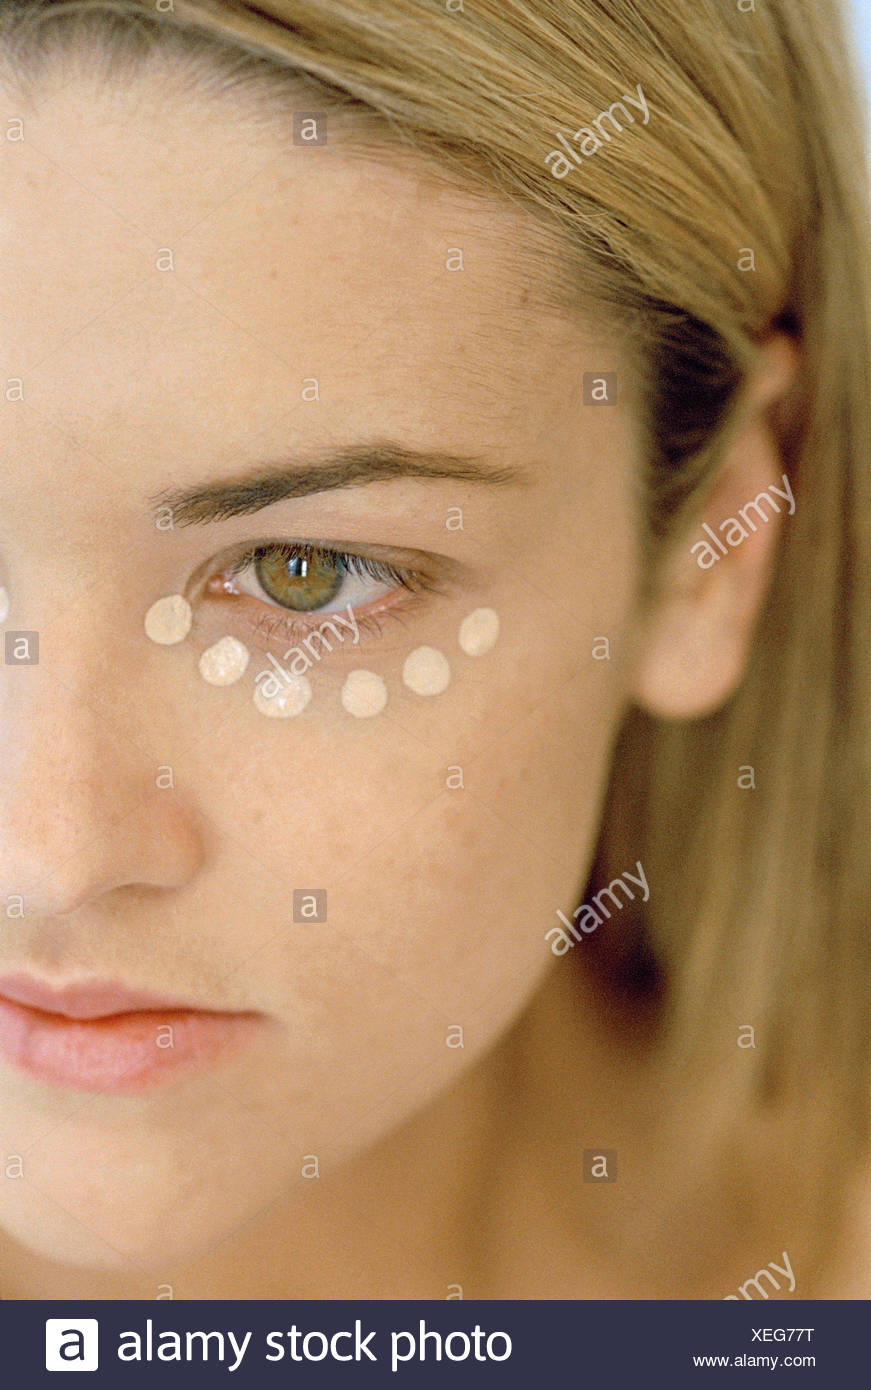 Close up of half face of female straight shoulder length blonde hair tucked behind ear spots of concealer under eye looking - Stock Image